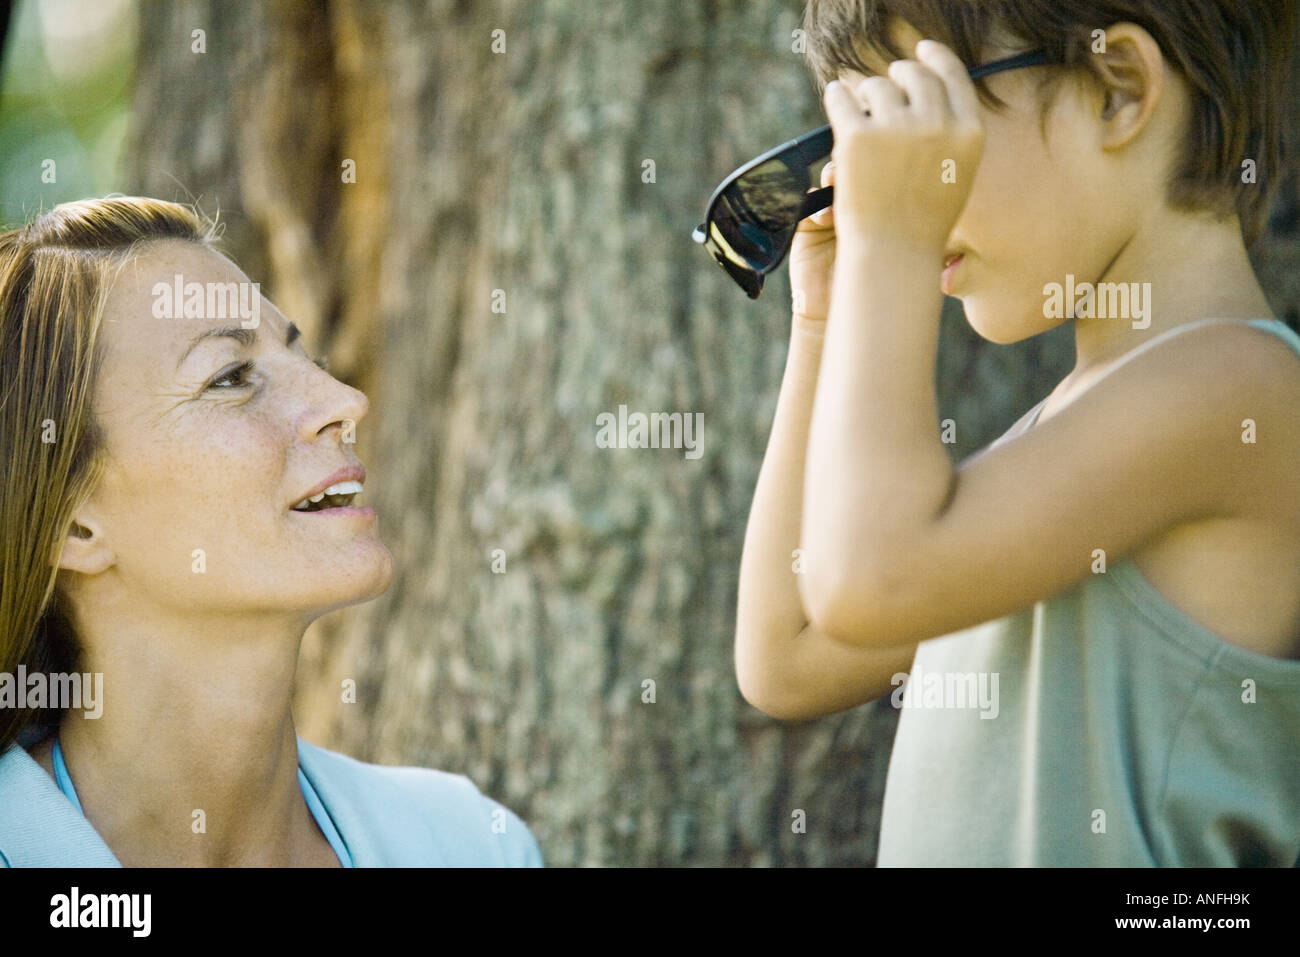 Mother and son, boy putting on sunglasses - Stock Image